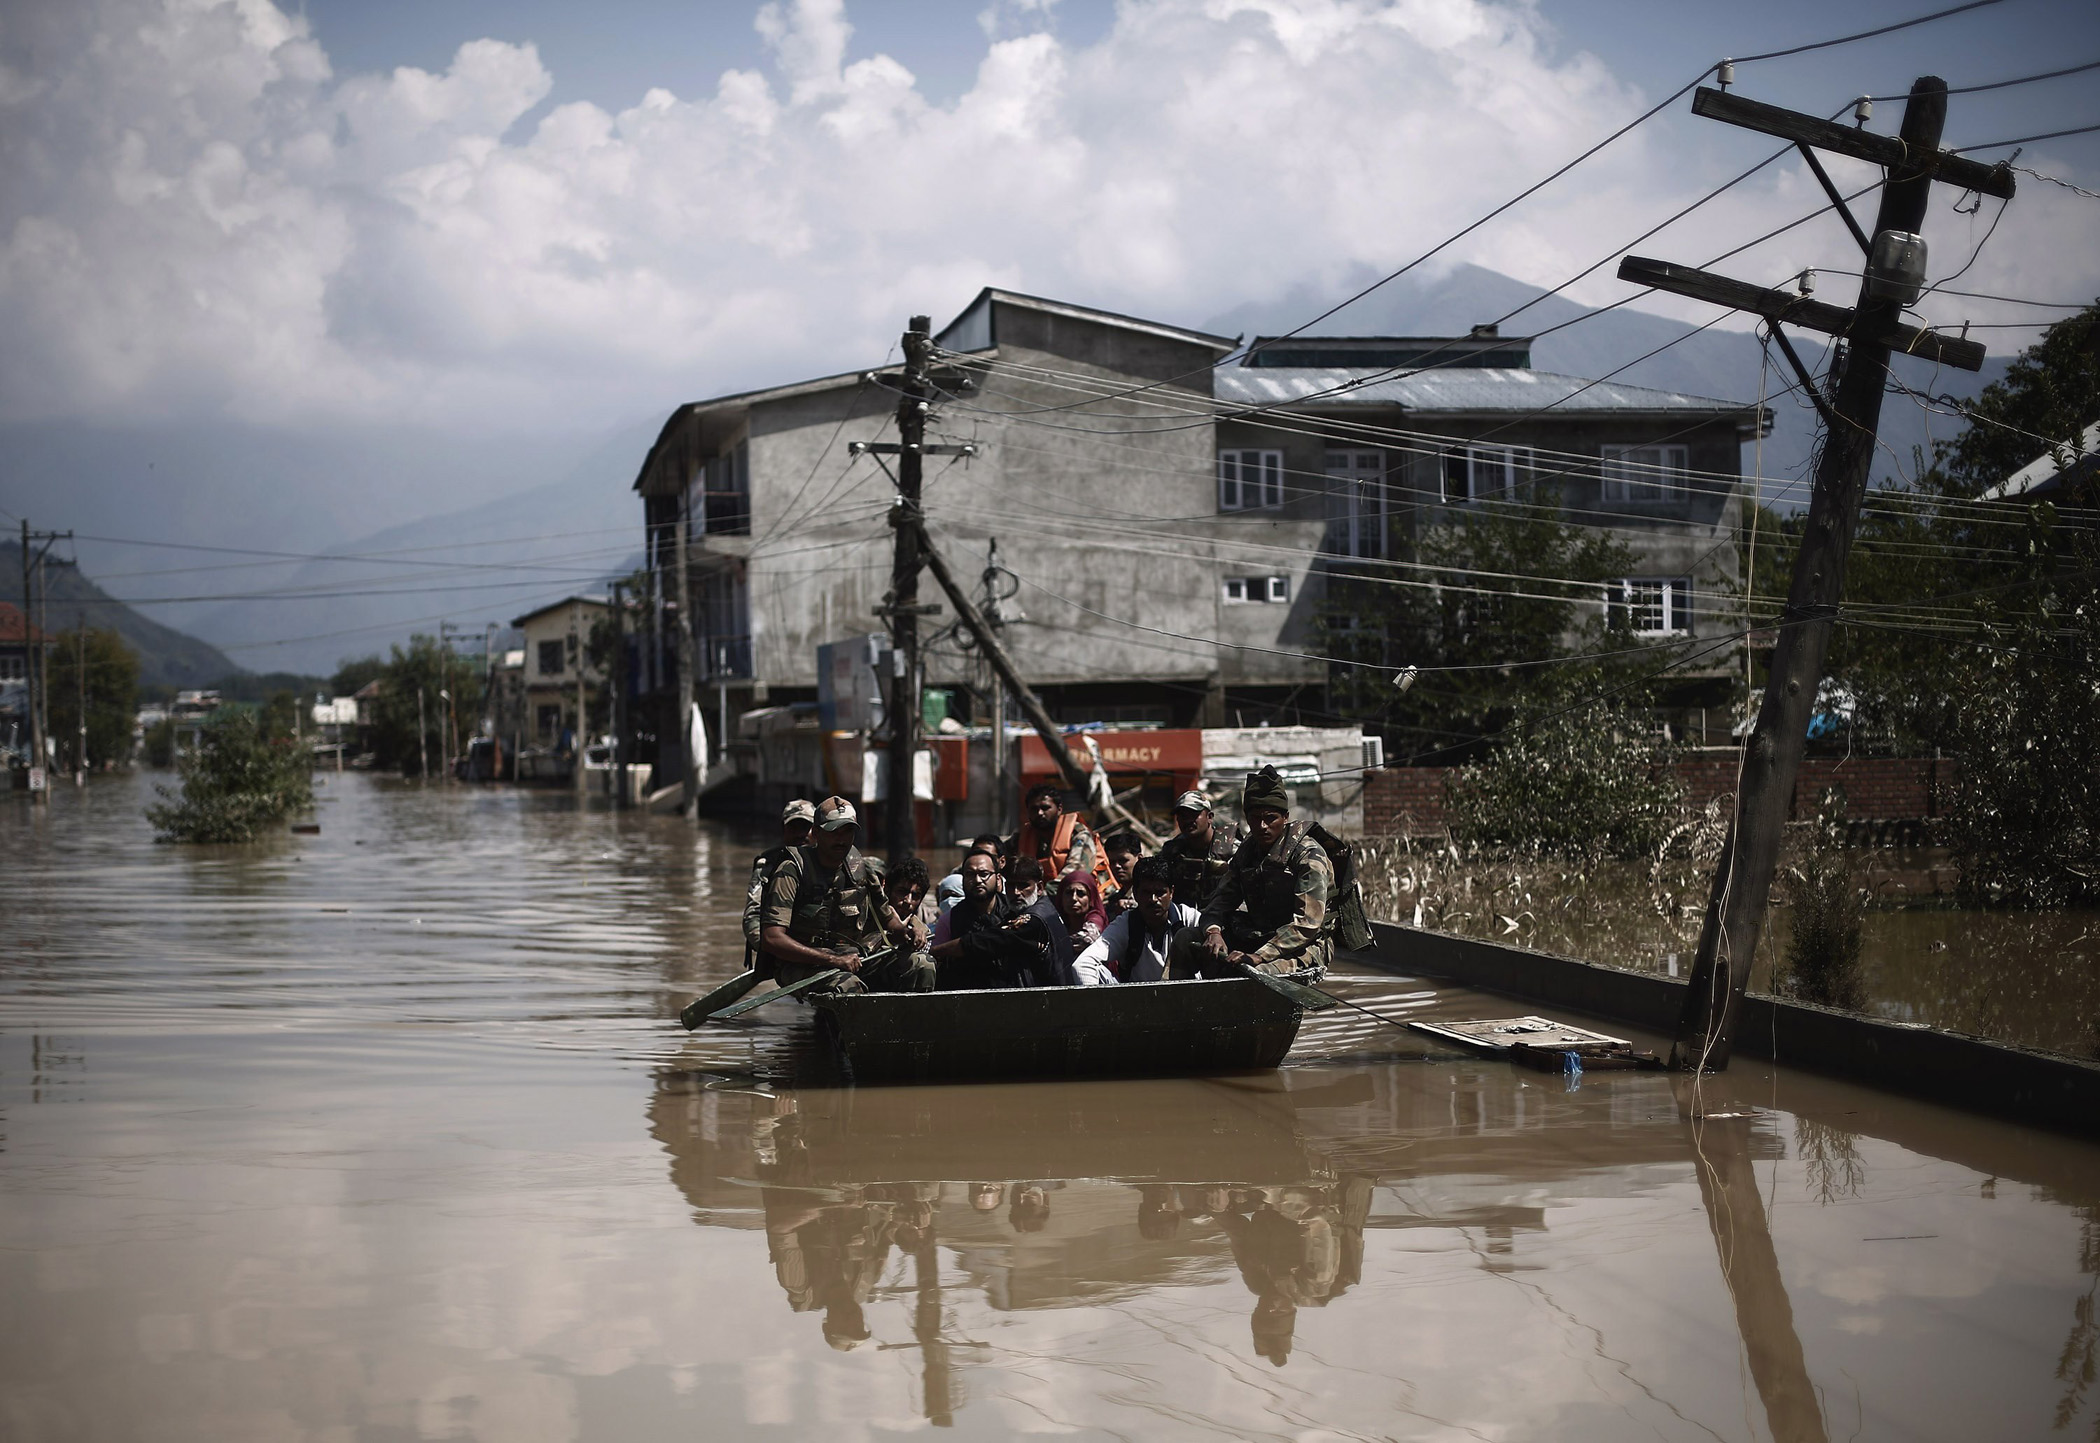 Indian army soldiers evacuate flood victims by a boat to a safer place in Srinagar, Sept. 13, 2014.